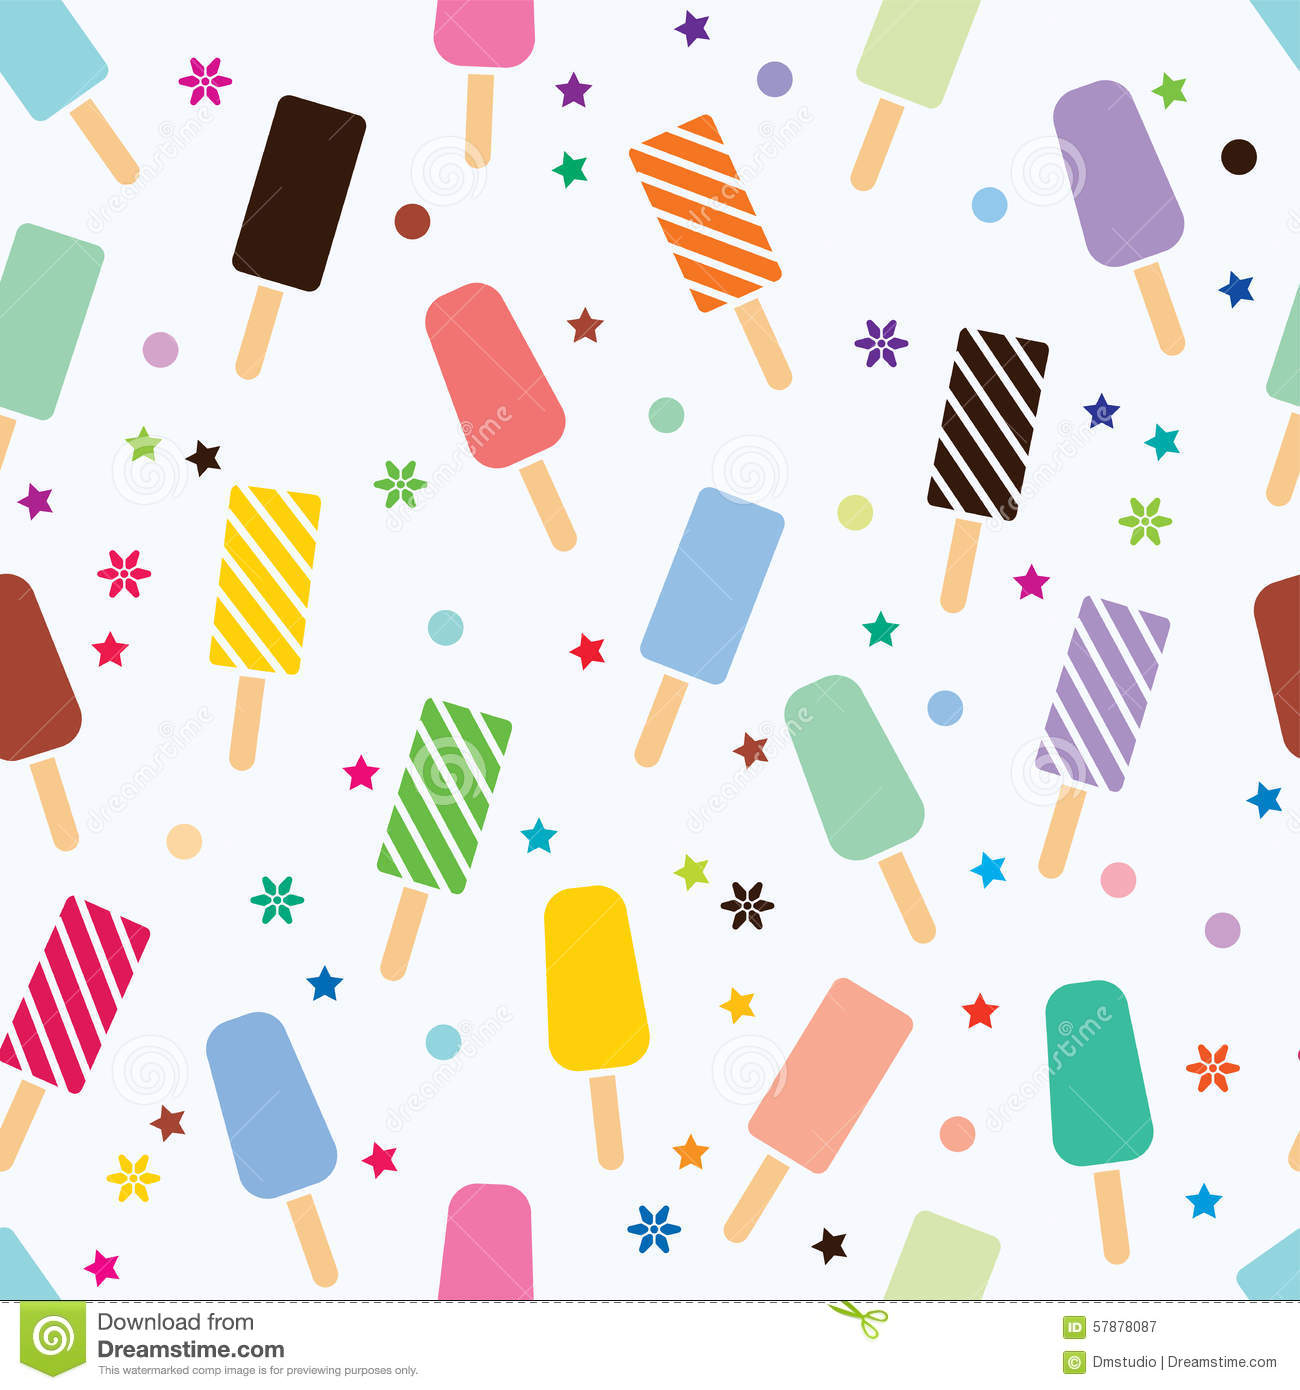 Seamless Ice Cream Wallpaper Royalty Free Stock Images: Vector Seamless Icecream Pattern Stock Vector